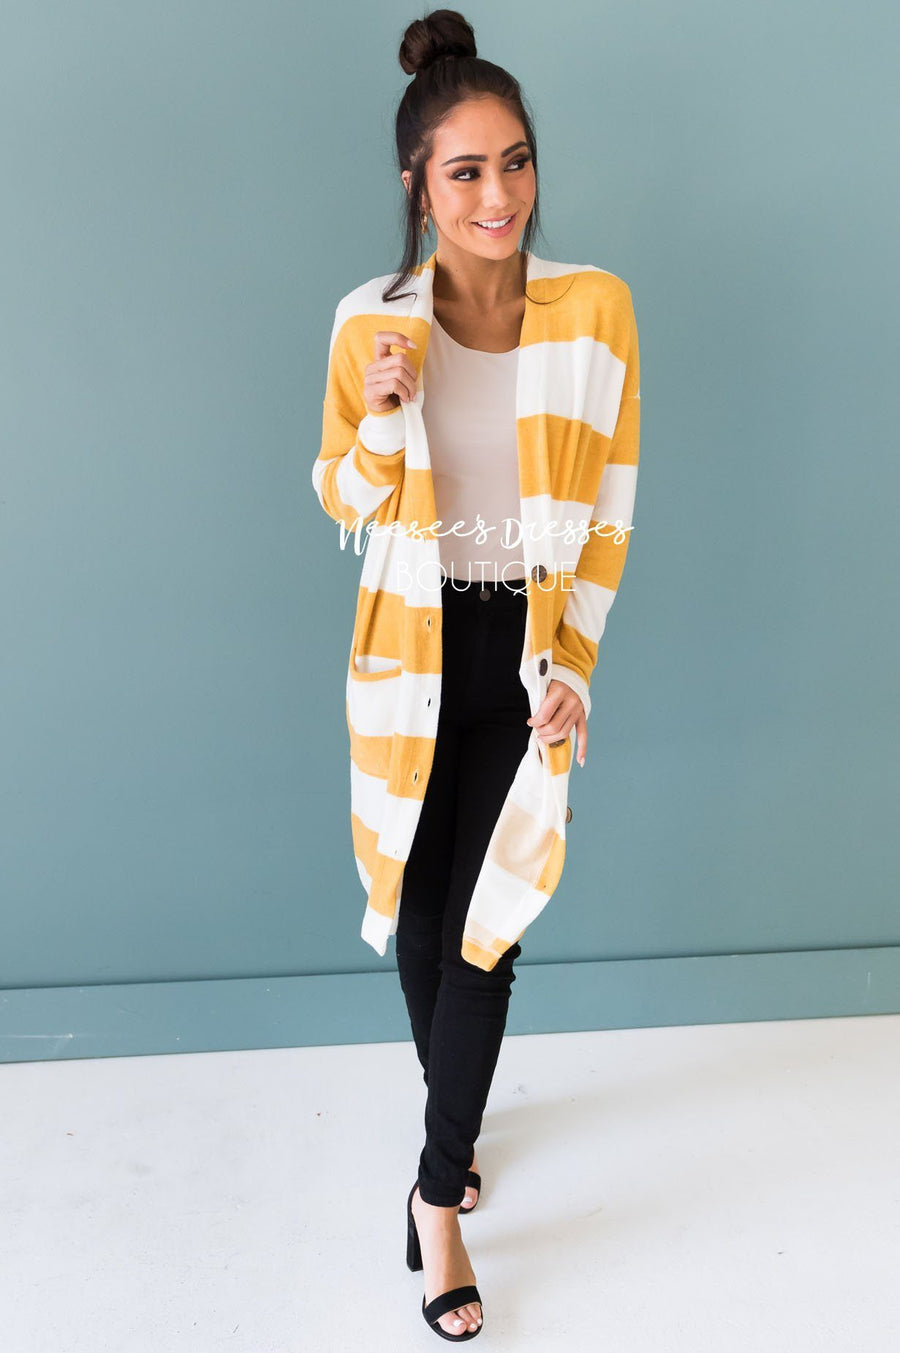 Take Your Chance Modest Cardigan